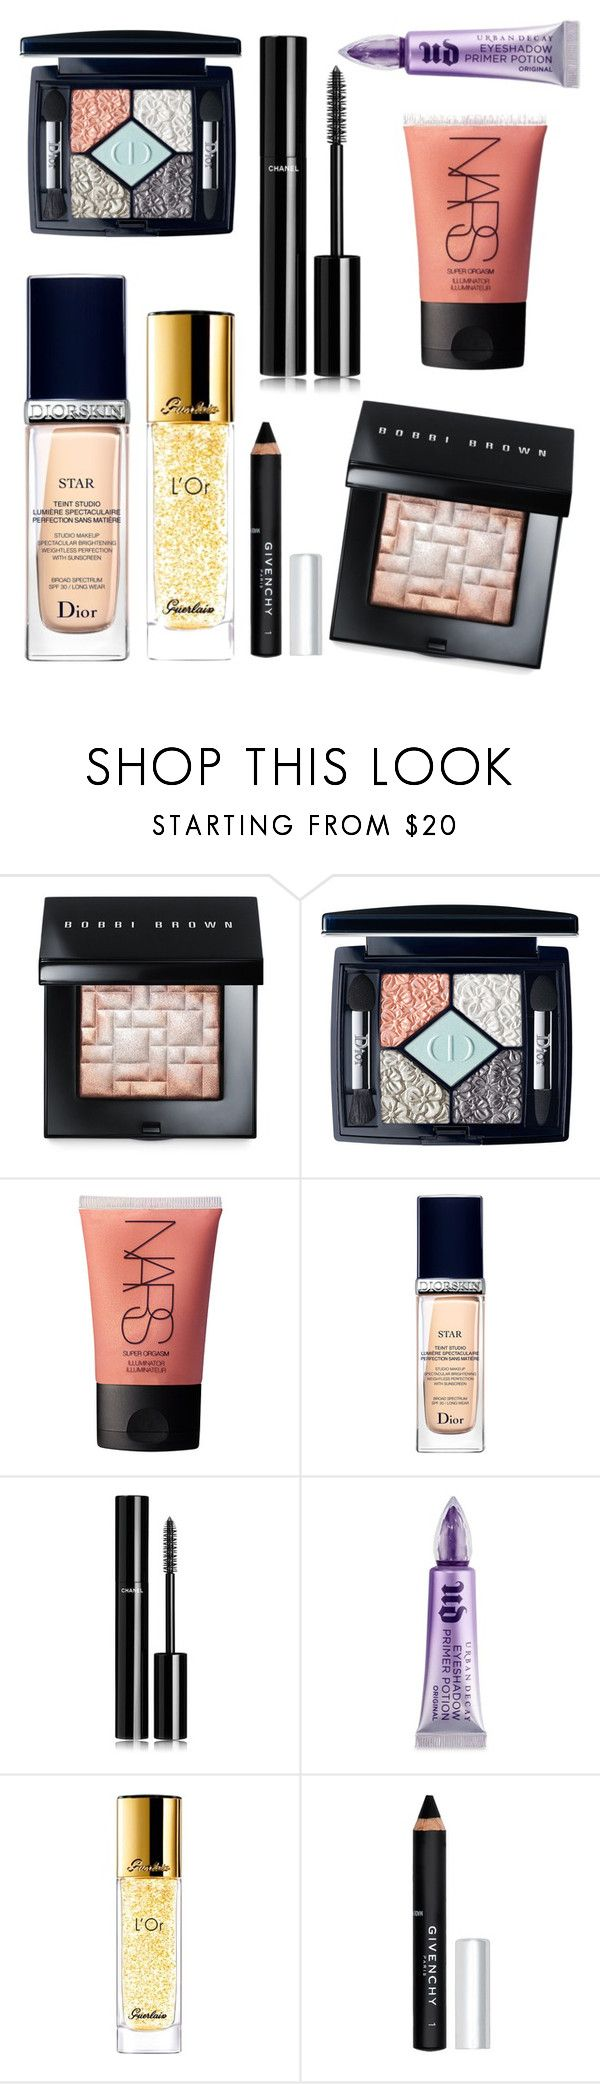 """High end makeup must-haves "" by kristinakai ❤ liked on Polyvore featuring beauty, Bobbi Brown Cosmetics, Christian Dior, NARS Cosmetics, Chanel, Urban Decay, Guerlain and Givenchy"